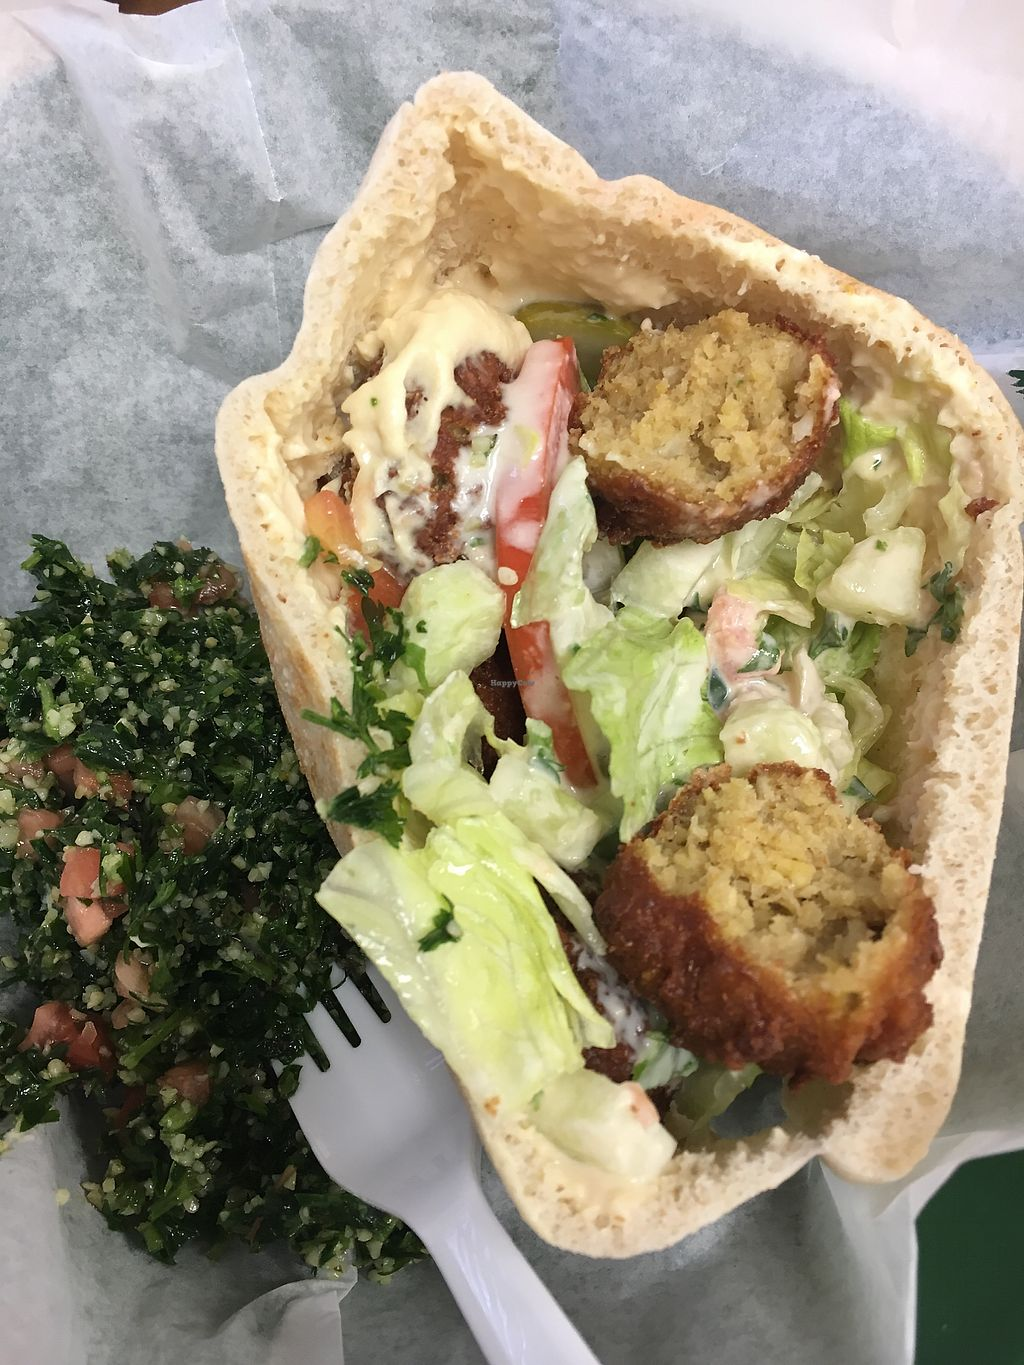 """Photo of Pita House  by <a href=""""/members/profile/turtleveg"""">turtleveg</a> <br/>falafel sandwich with tabouli  <br/> August 11, 2017  - <a href='/contact/abuse/image/98422/291699'>Report</a>"""